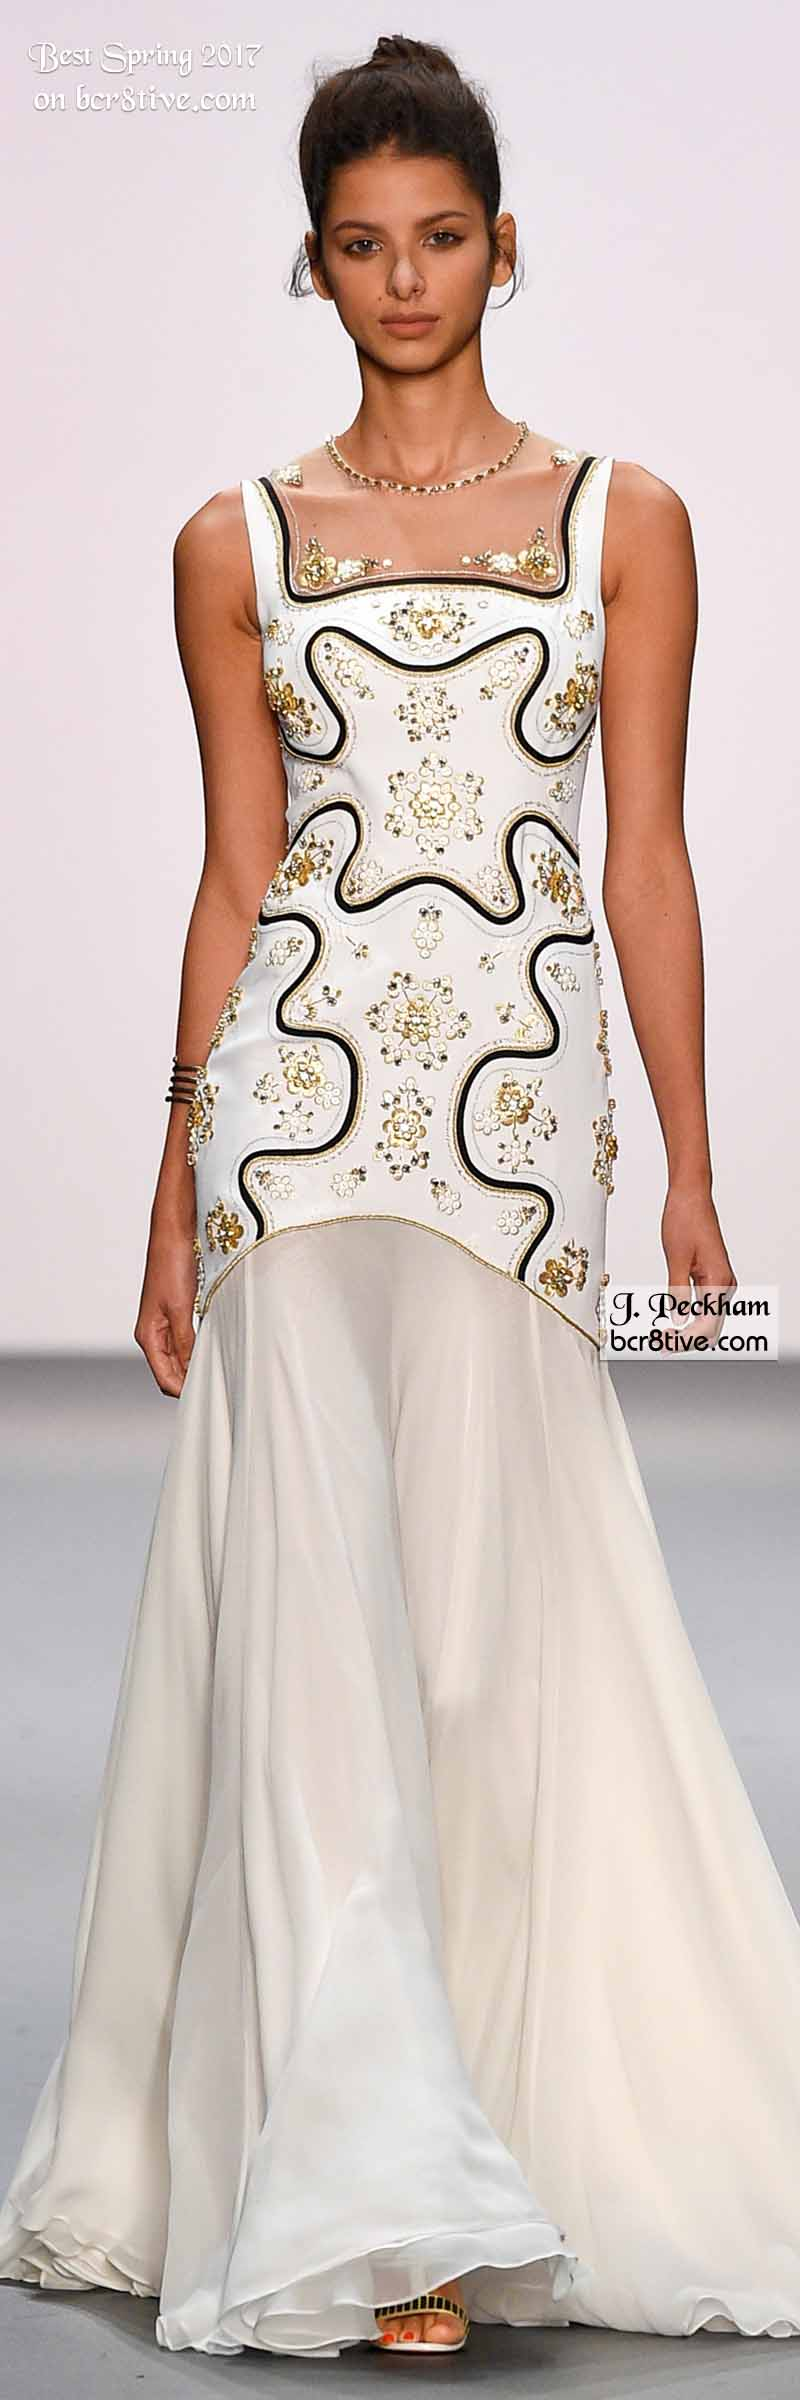 Jenny Packham - Best Looks from New York Fashion Week Spring 2017